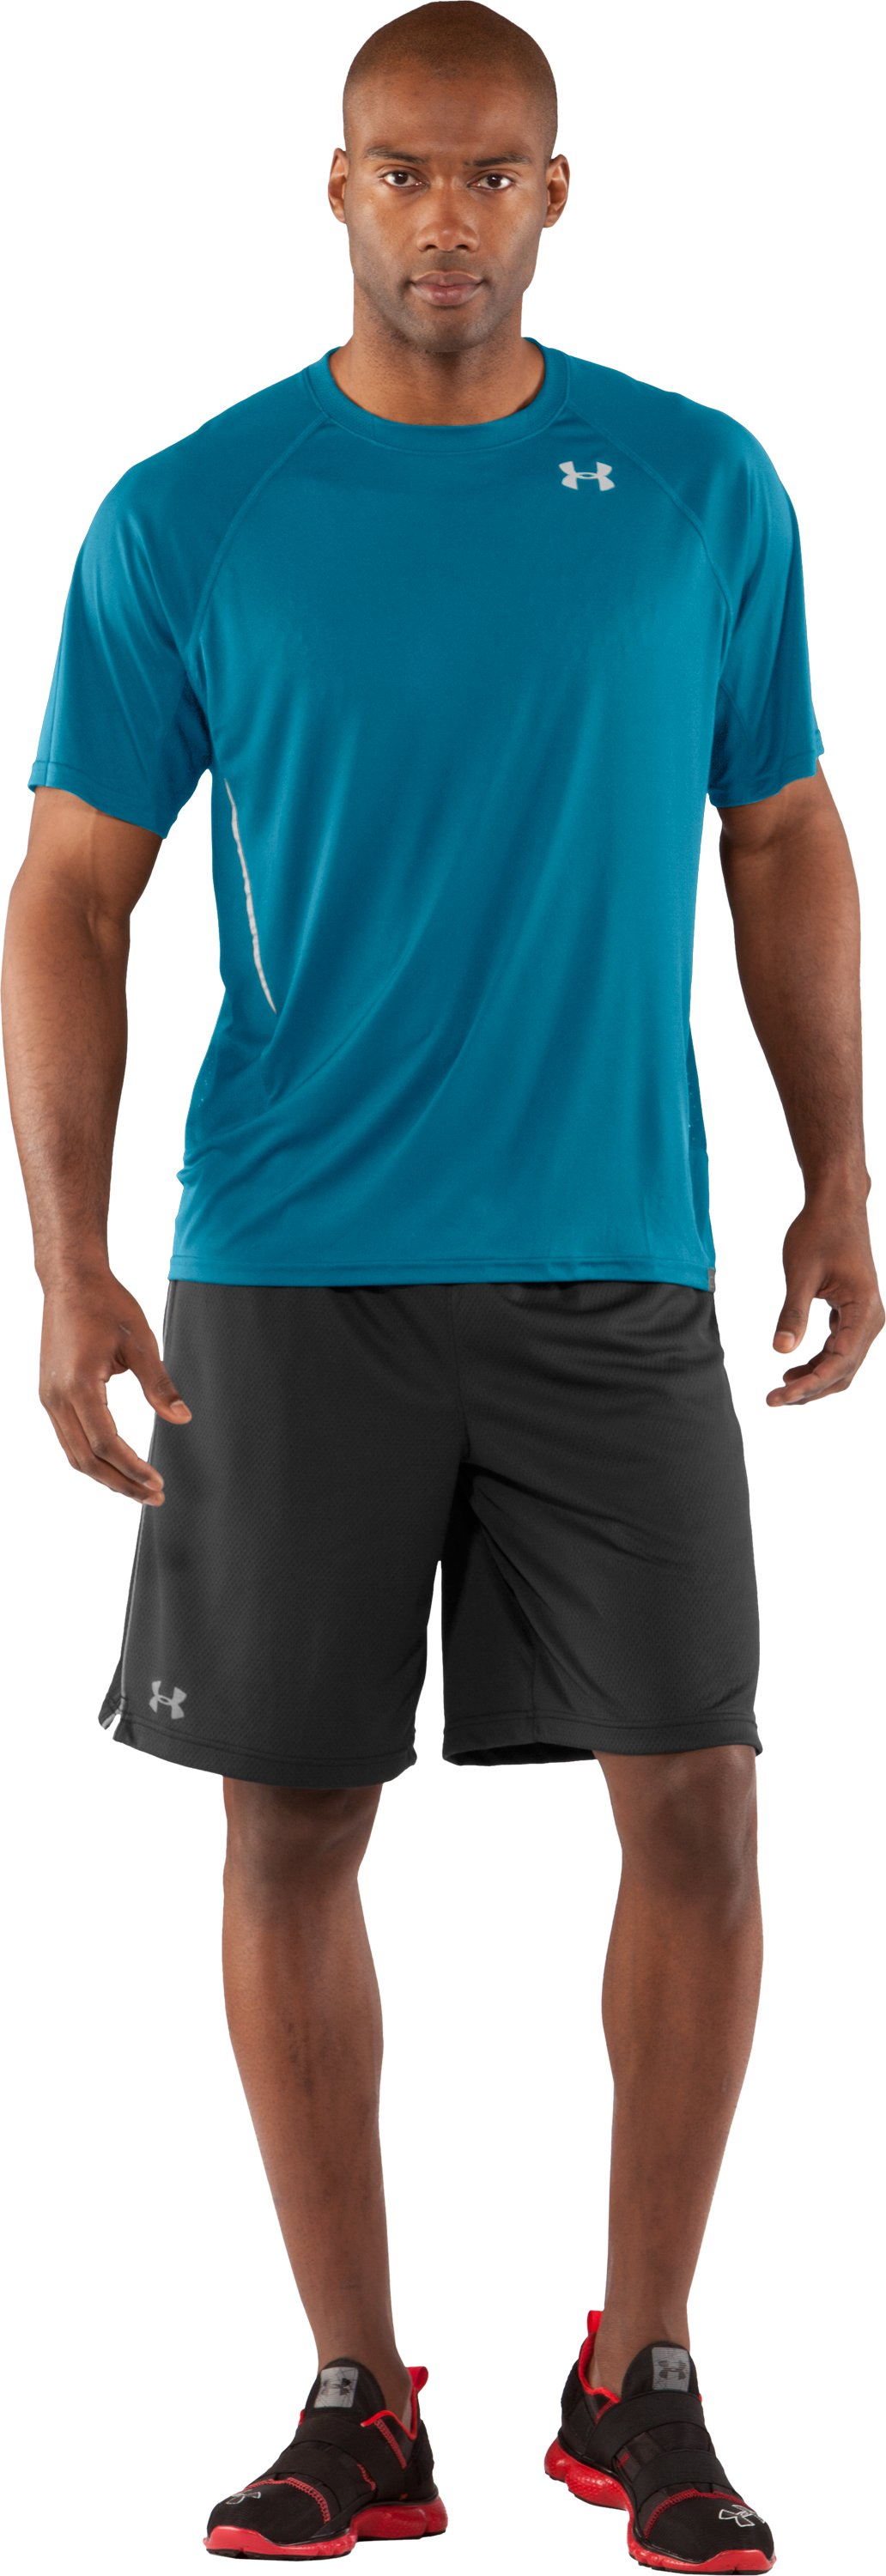 Men's Draft UA Catalyst Short Sleeve T-Shirt, Break, zoomed image